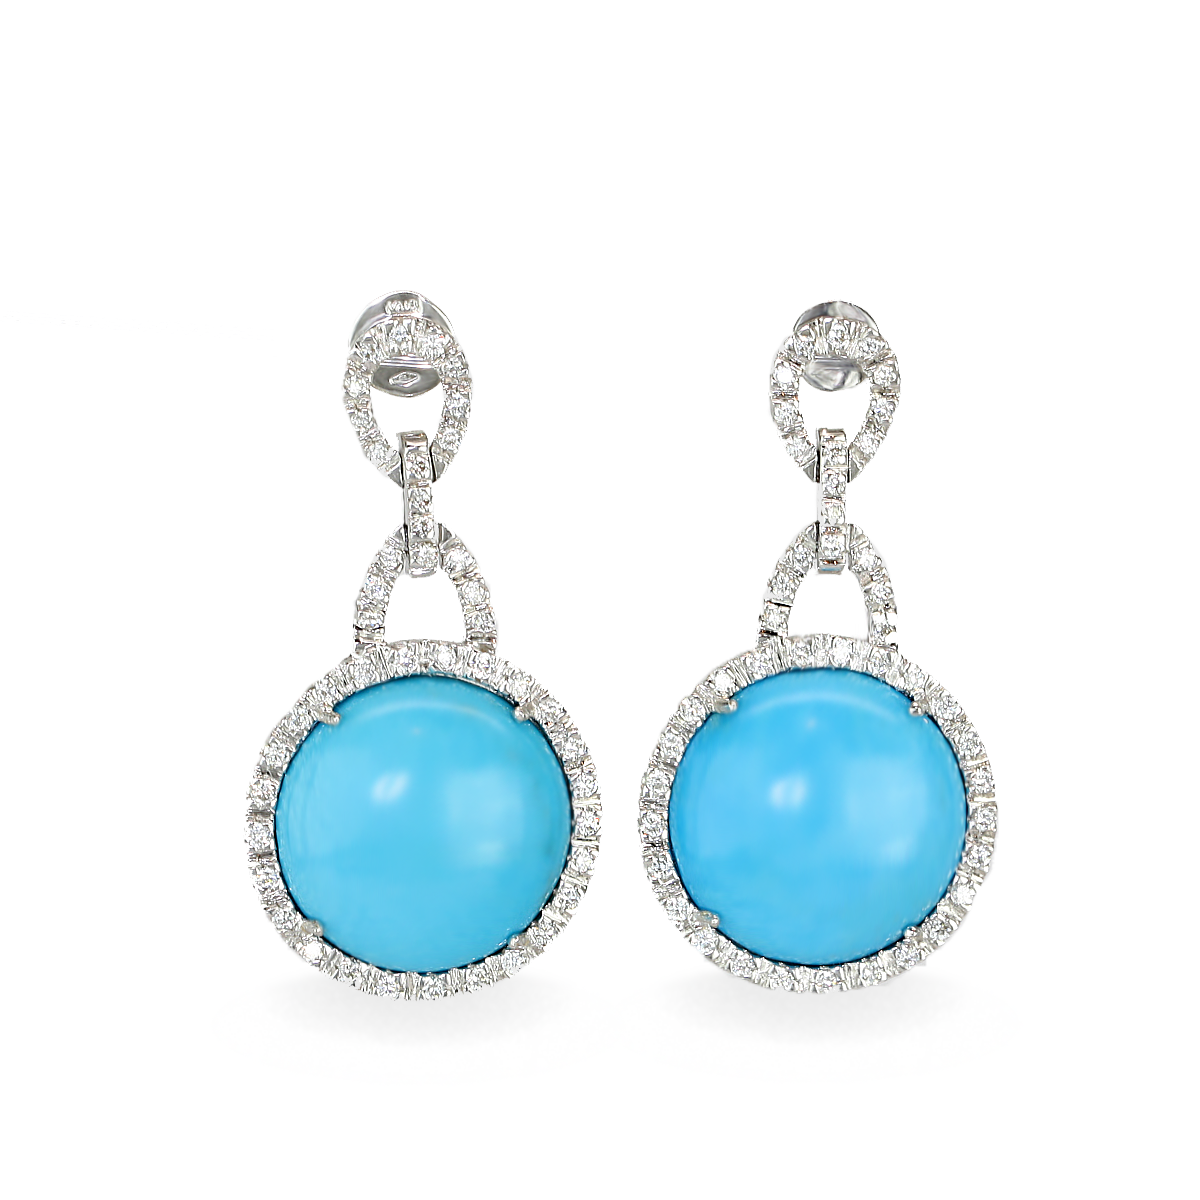 turquoise diamond and gold earrings by lanae lanae. Black Bedroom Furniture Sets. Home Design Ideas